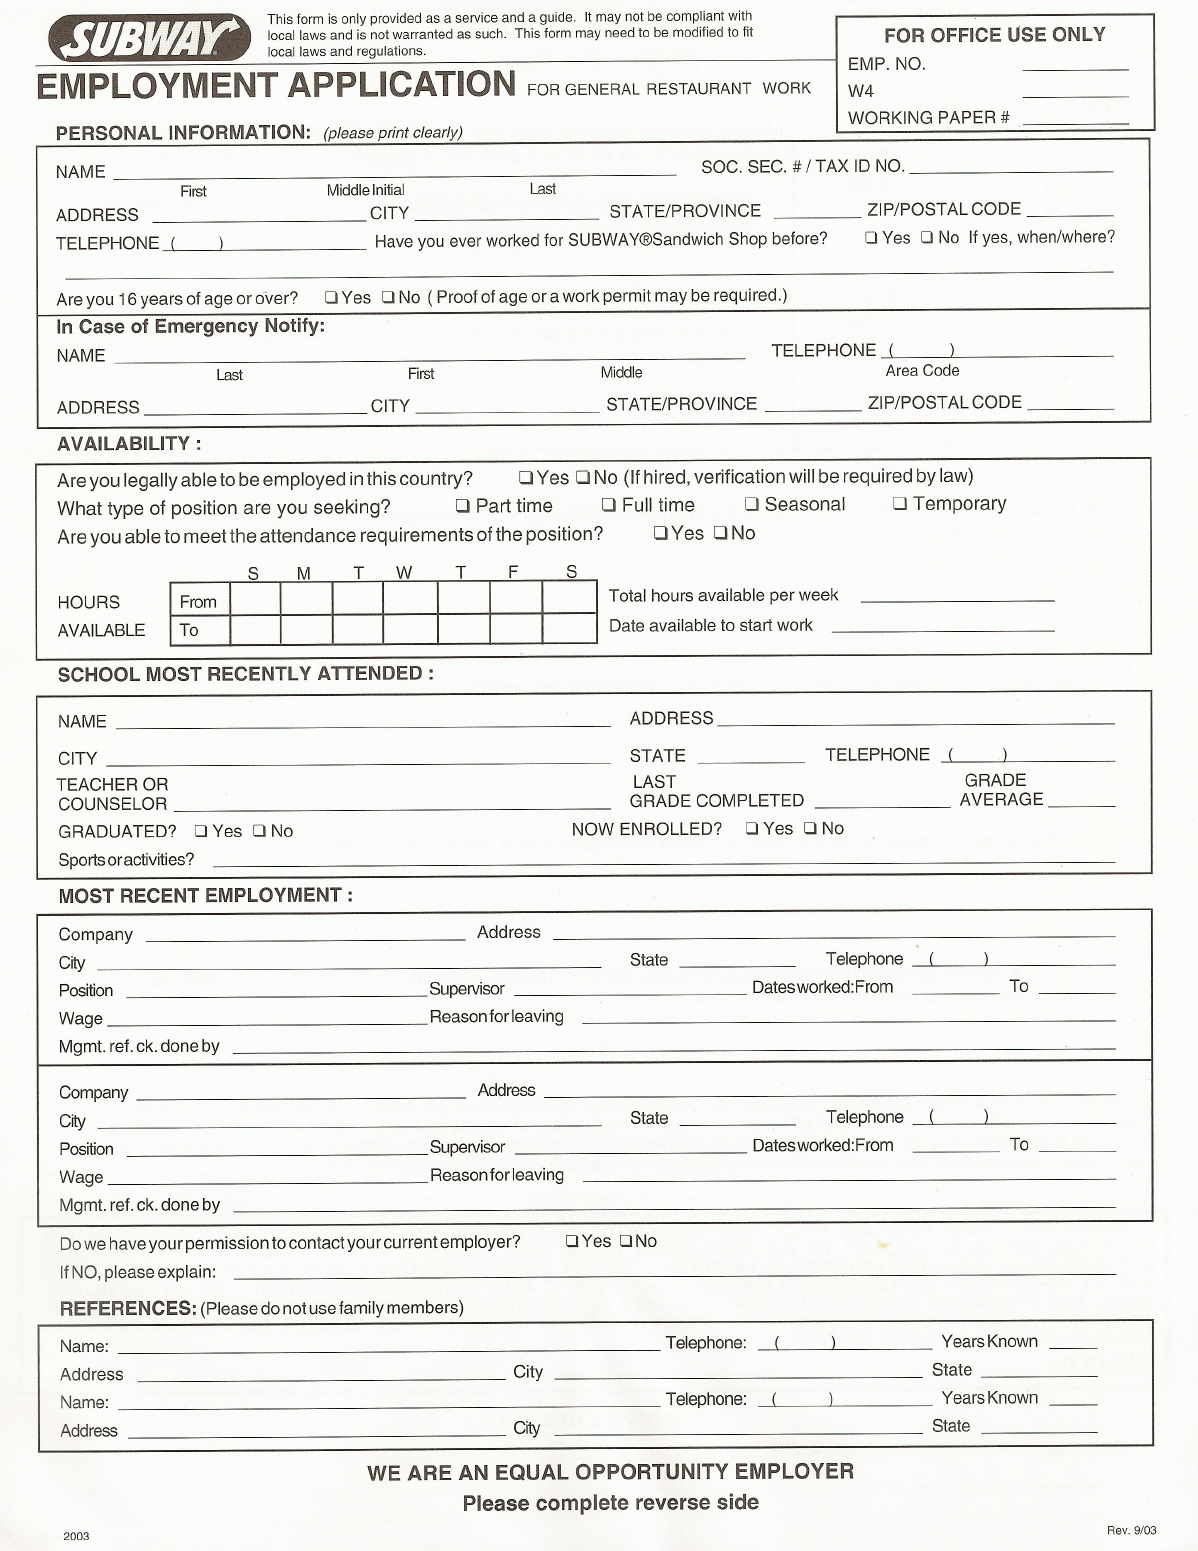 free printable subway job application form - Subway Job Description Resume